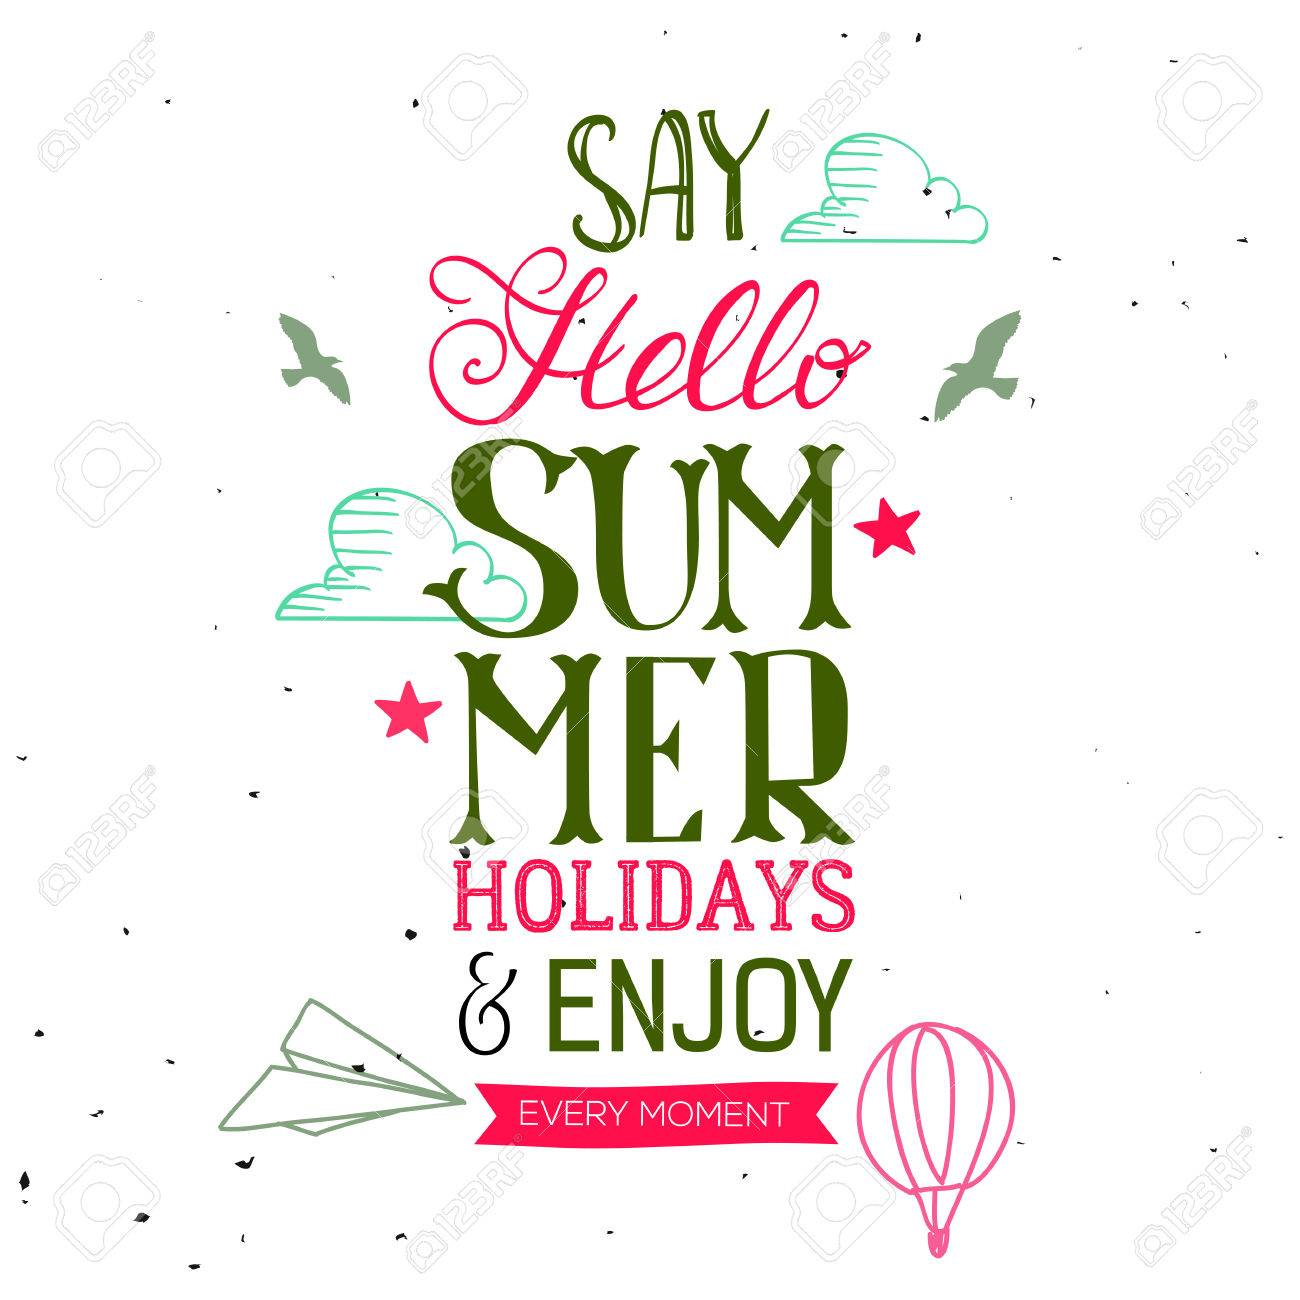 Say Hello Summer Holidays And Enjoy Every Moment Hand Drawn Quote Vector Season Poster With